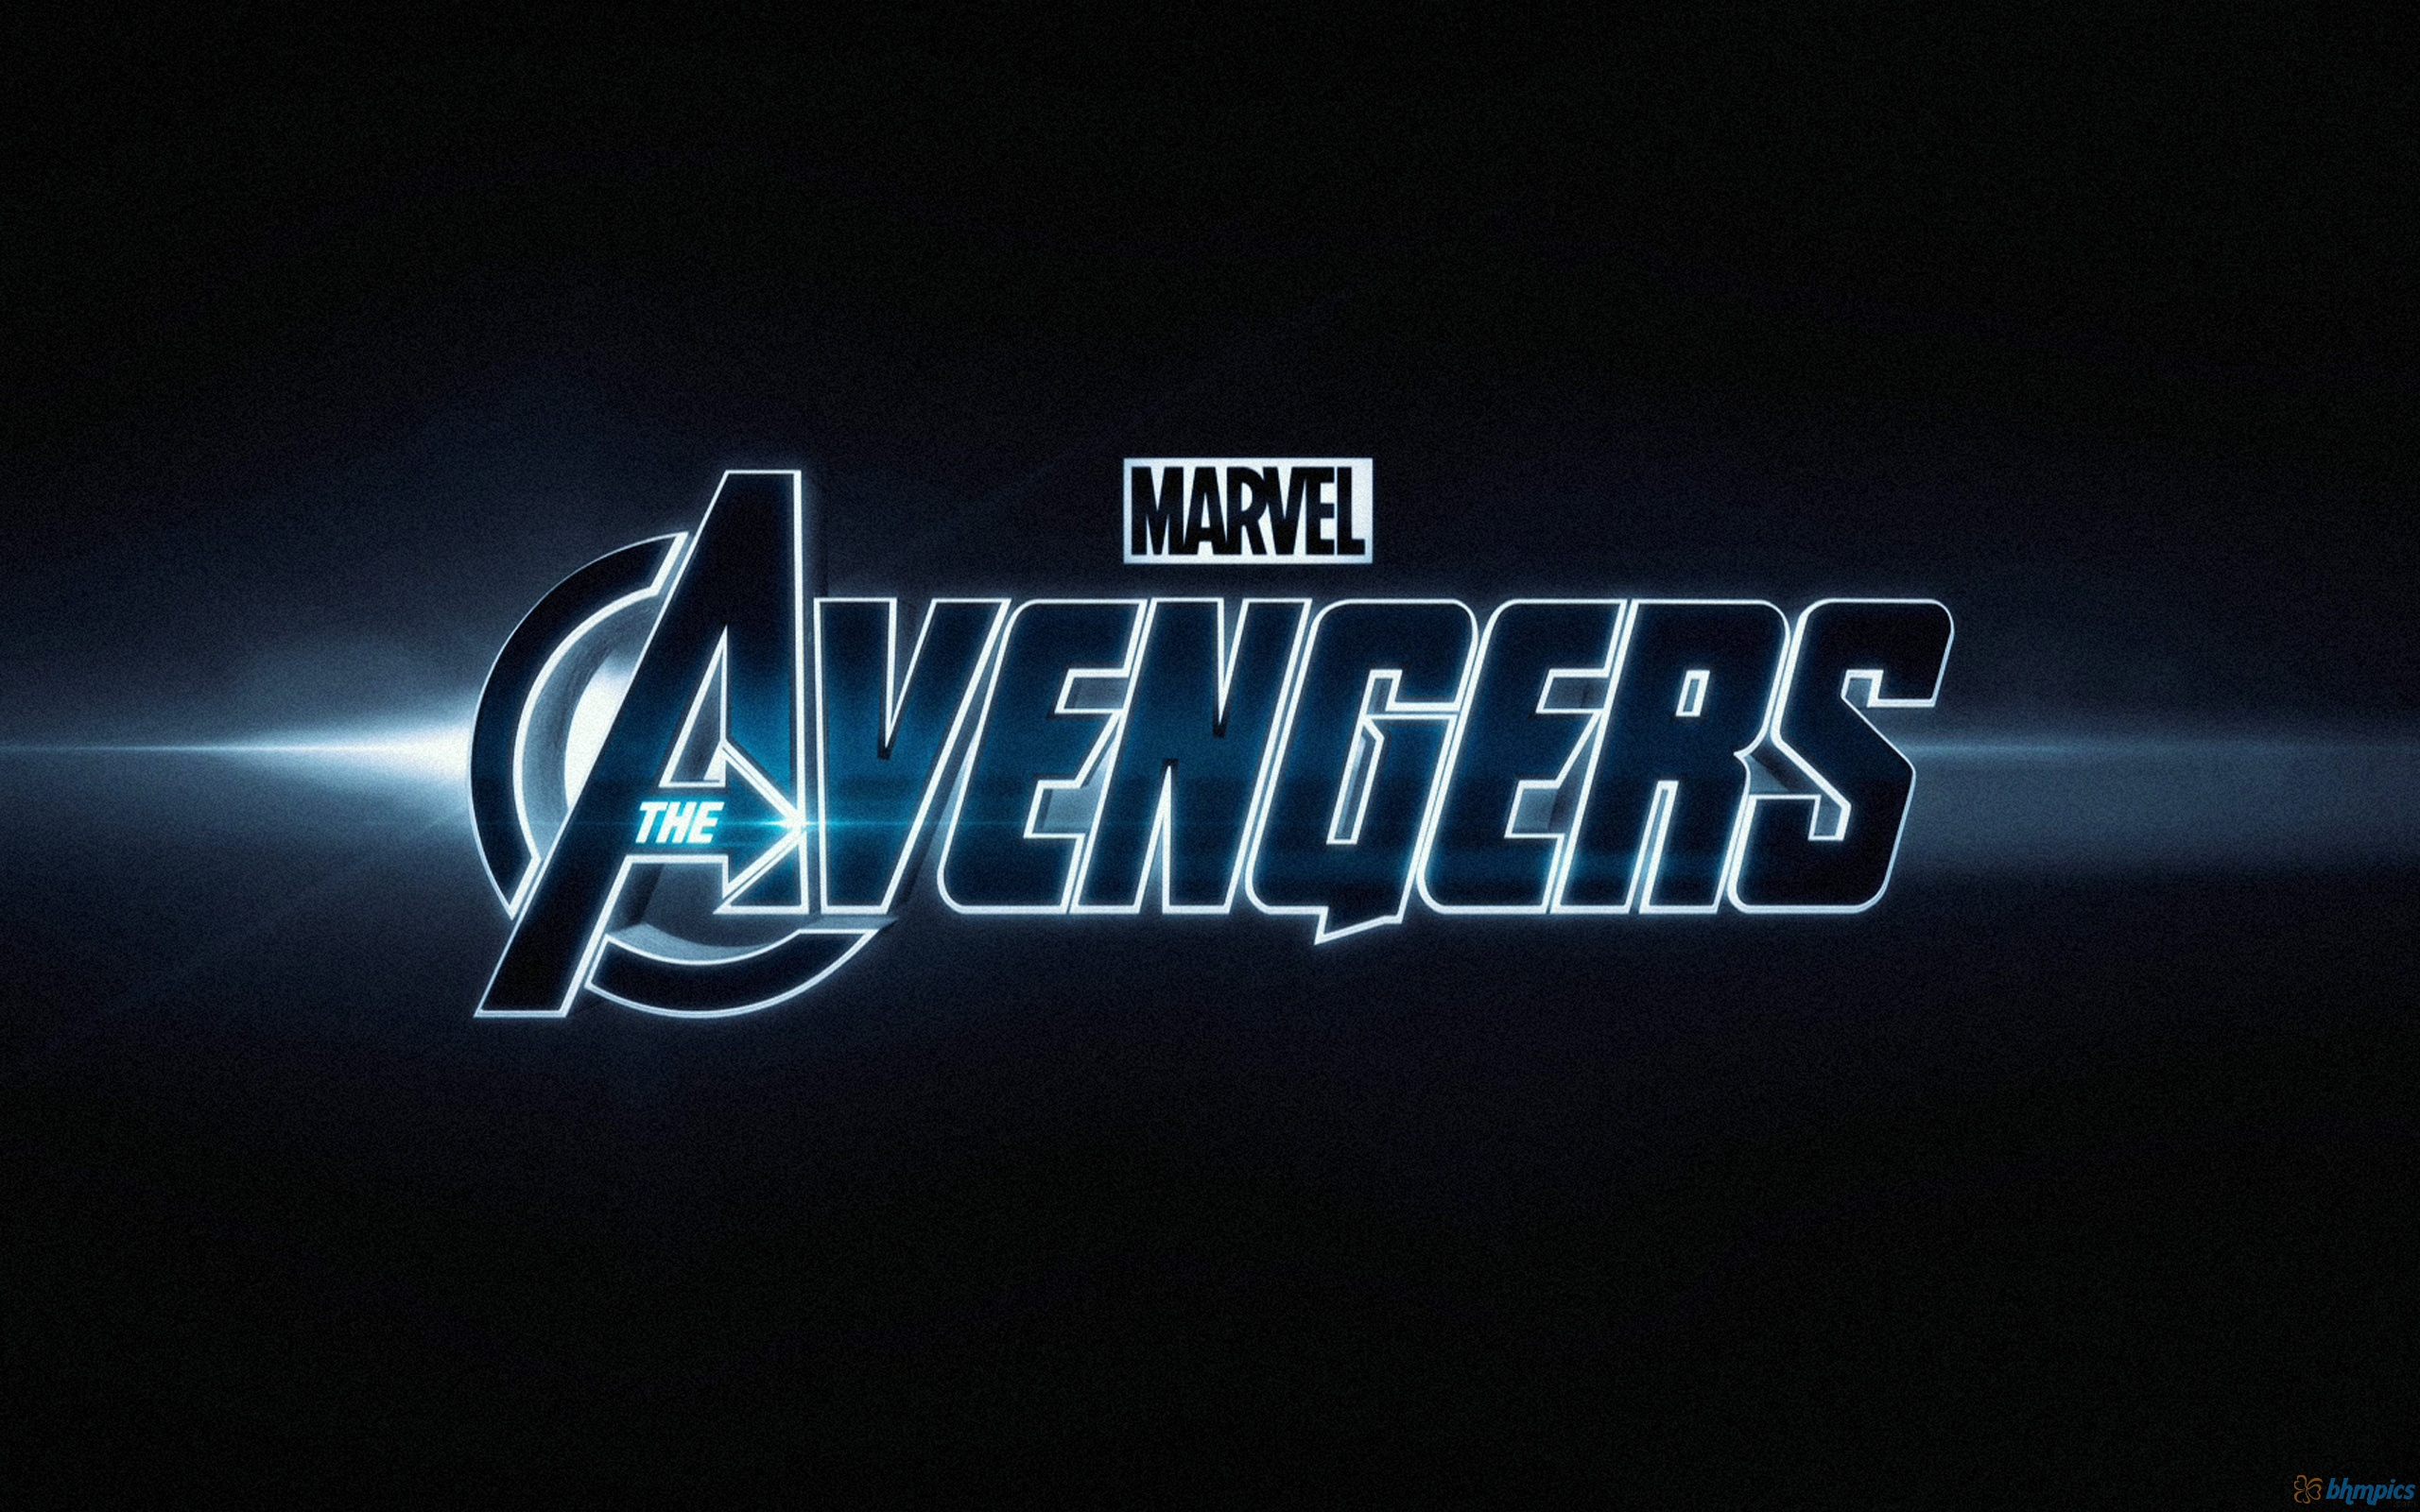 the avengers movie logo 2560x1600 - Review: The Avengers